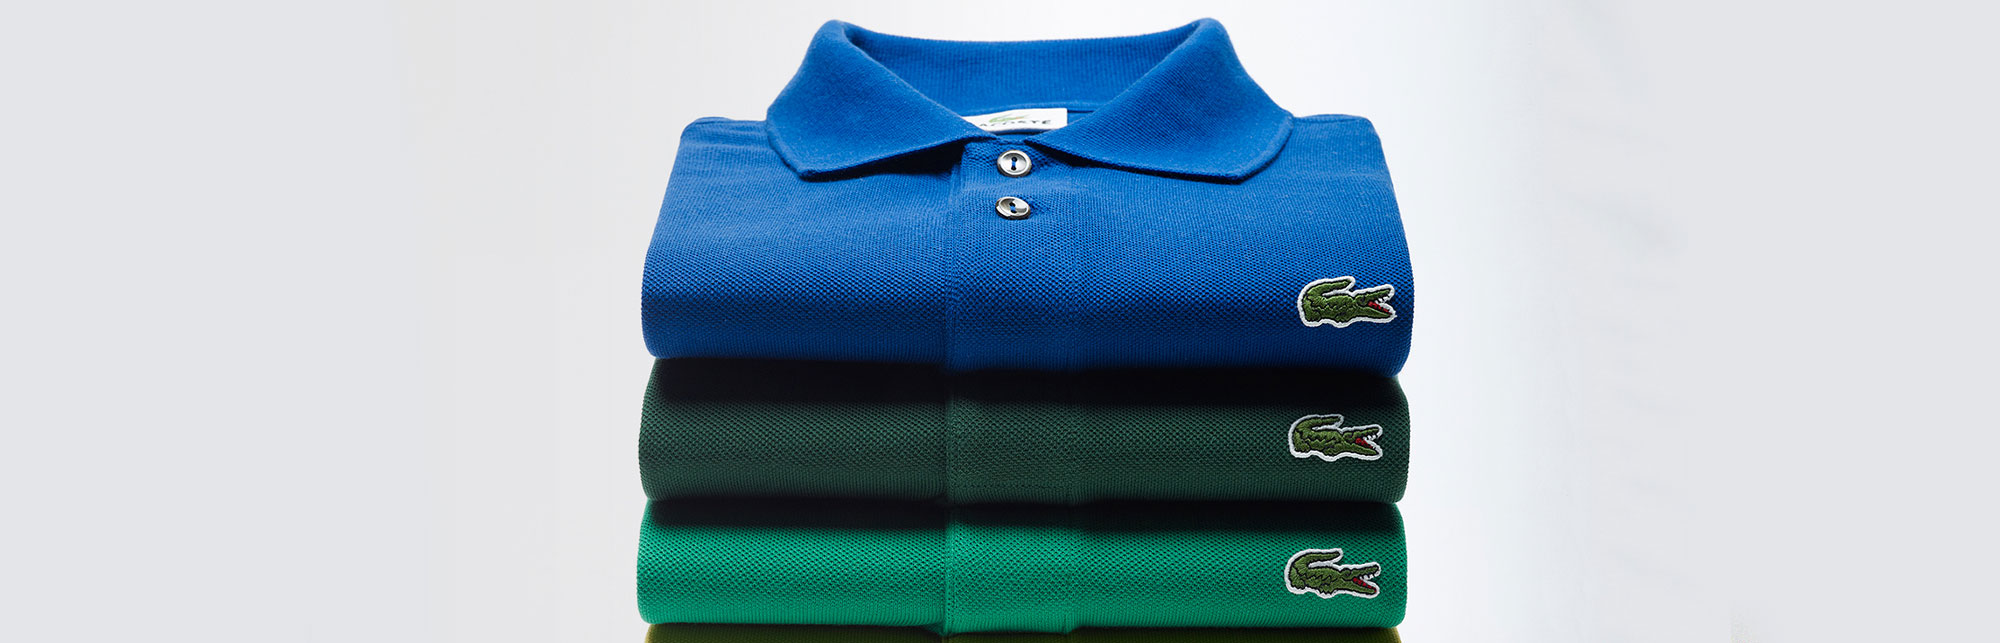 Lacoste shirt for men